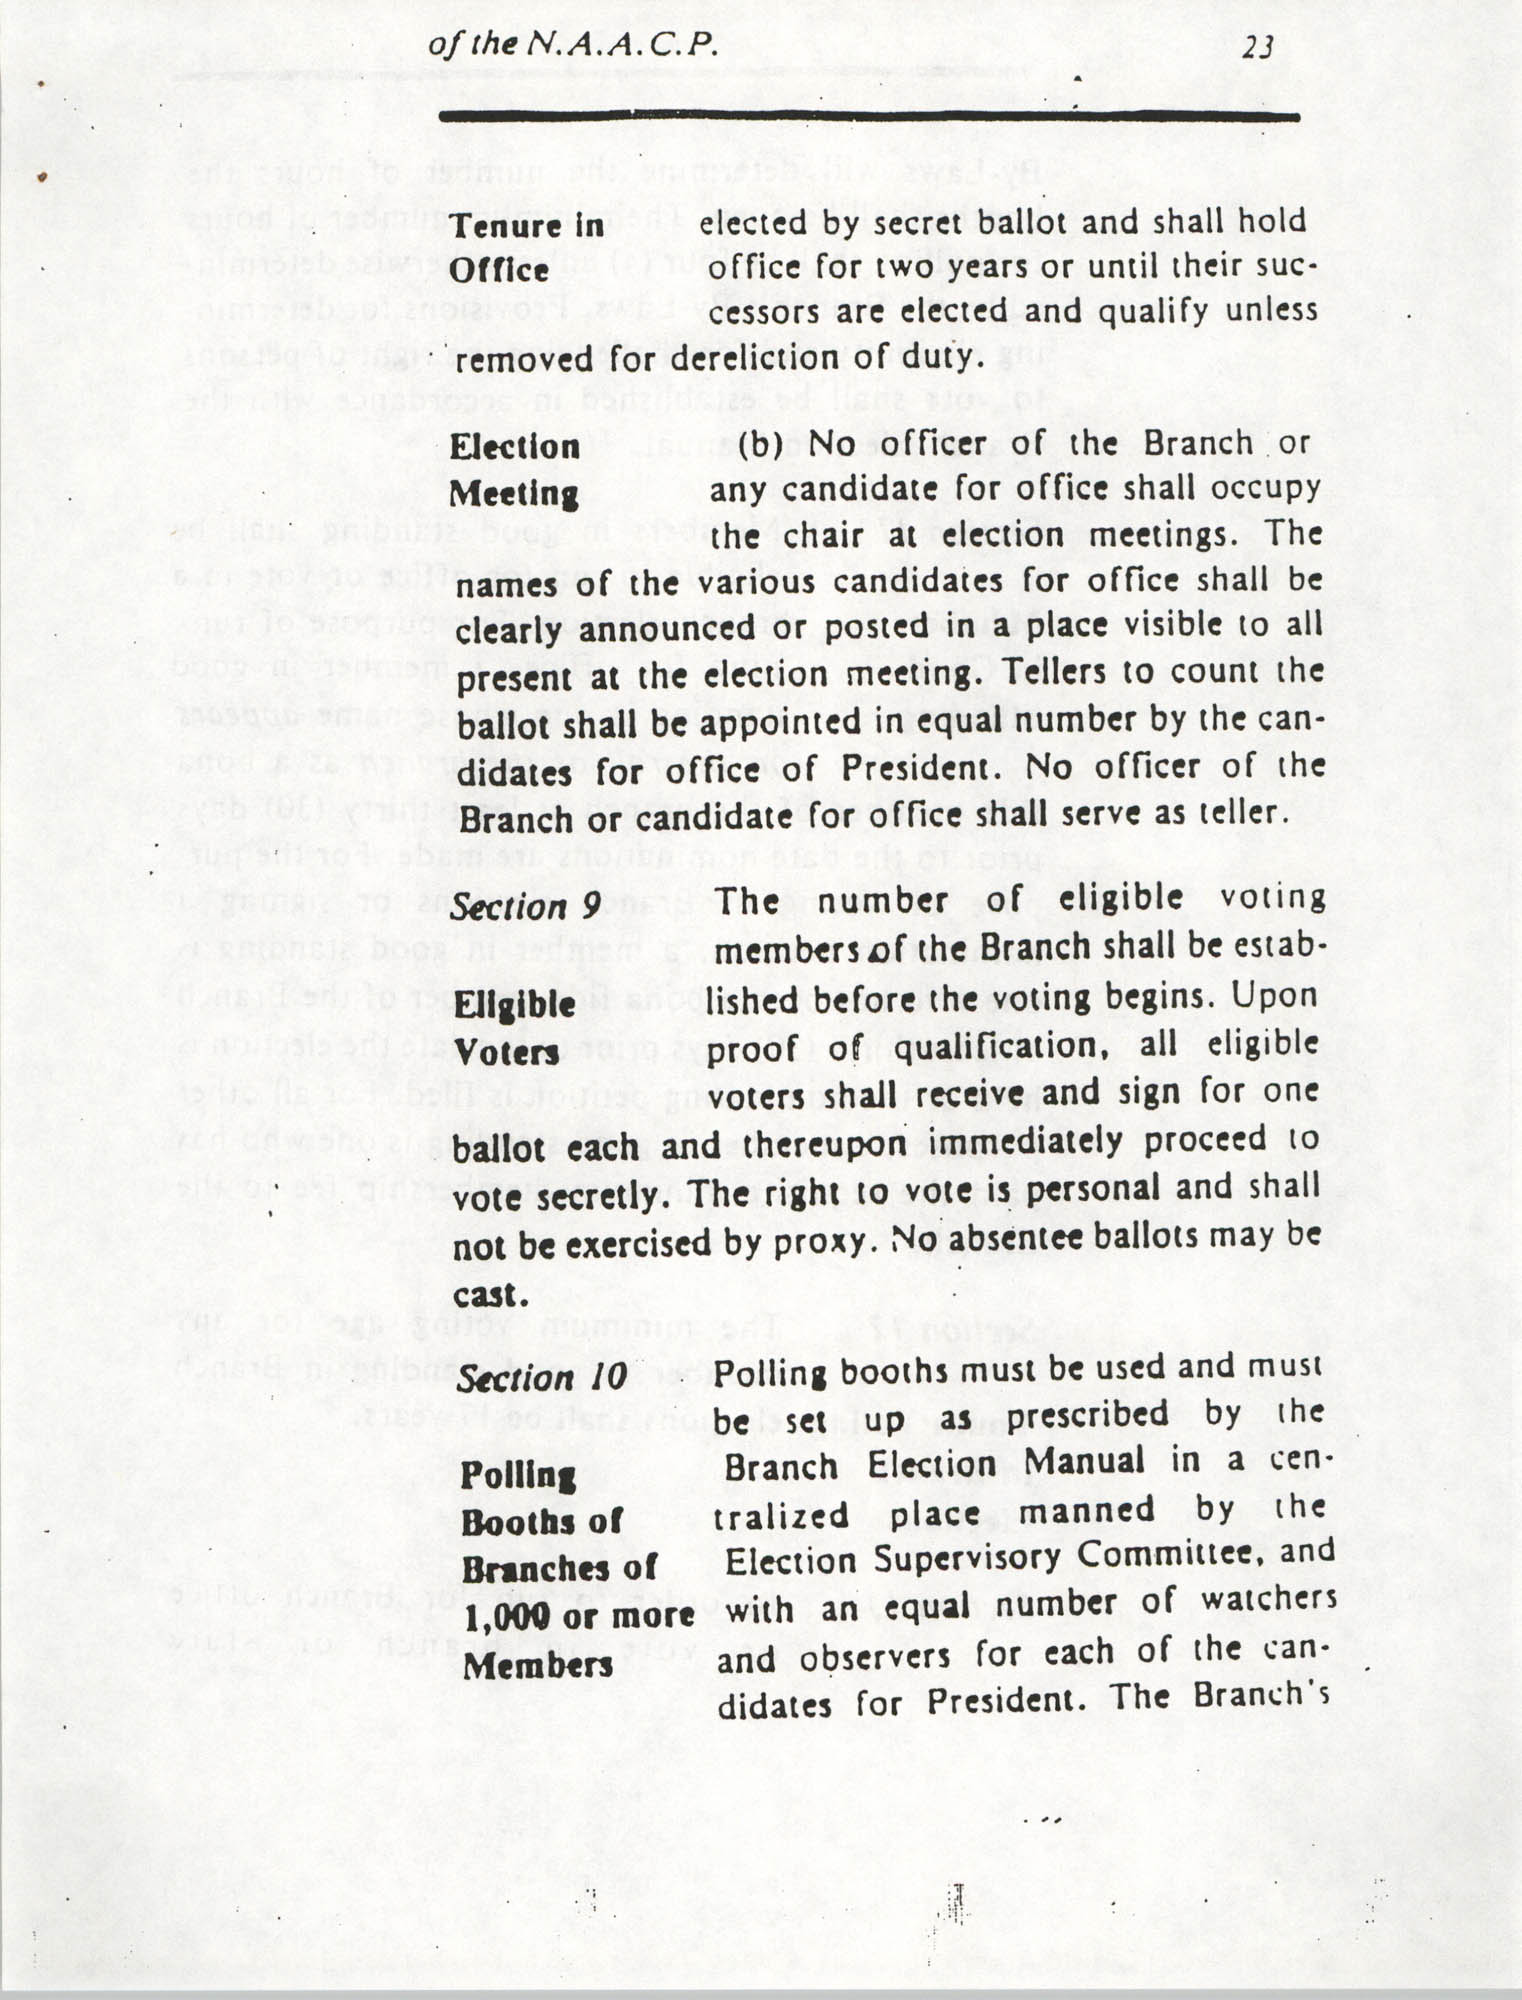 Constitution and By-Laws for Branches of the NAACP, March 1992, Page 23